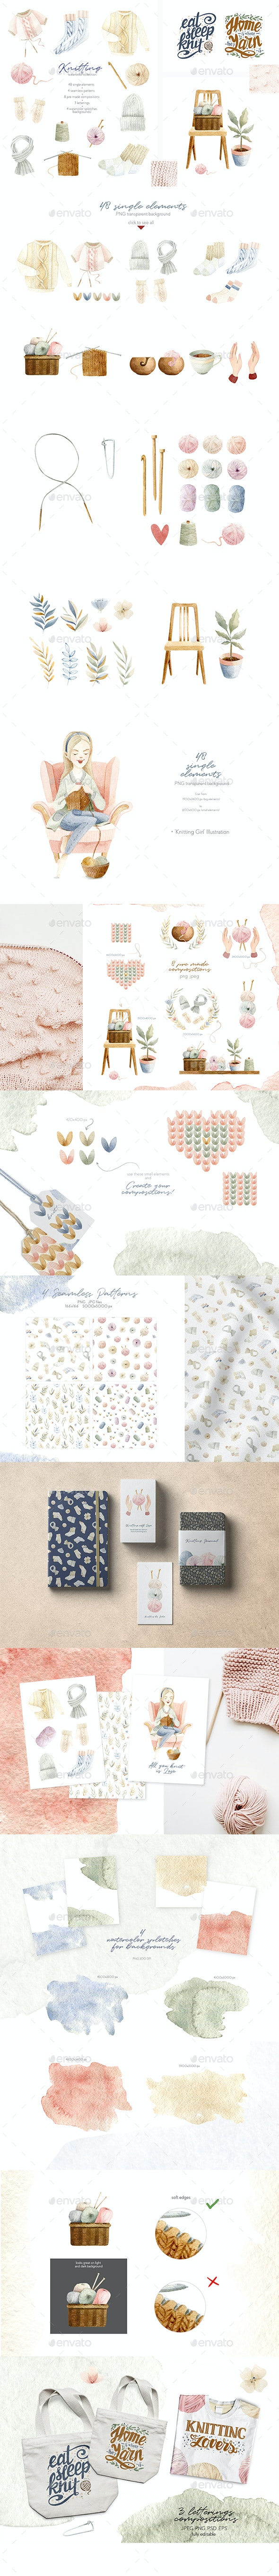 Knitting Watercolor Illustrations Collection - Objects Illustrations